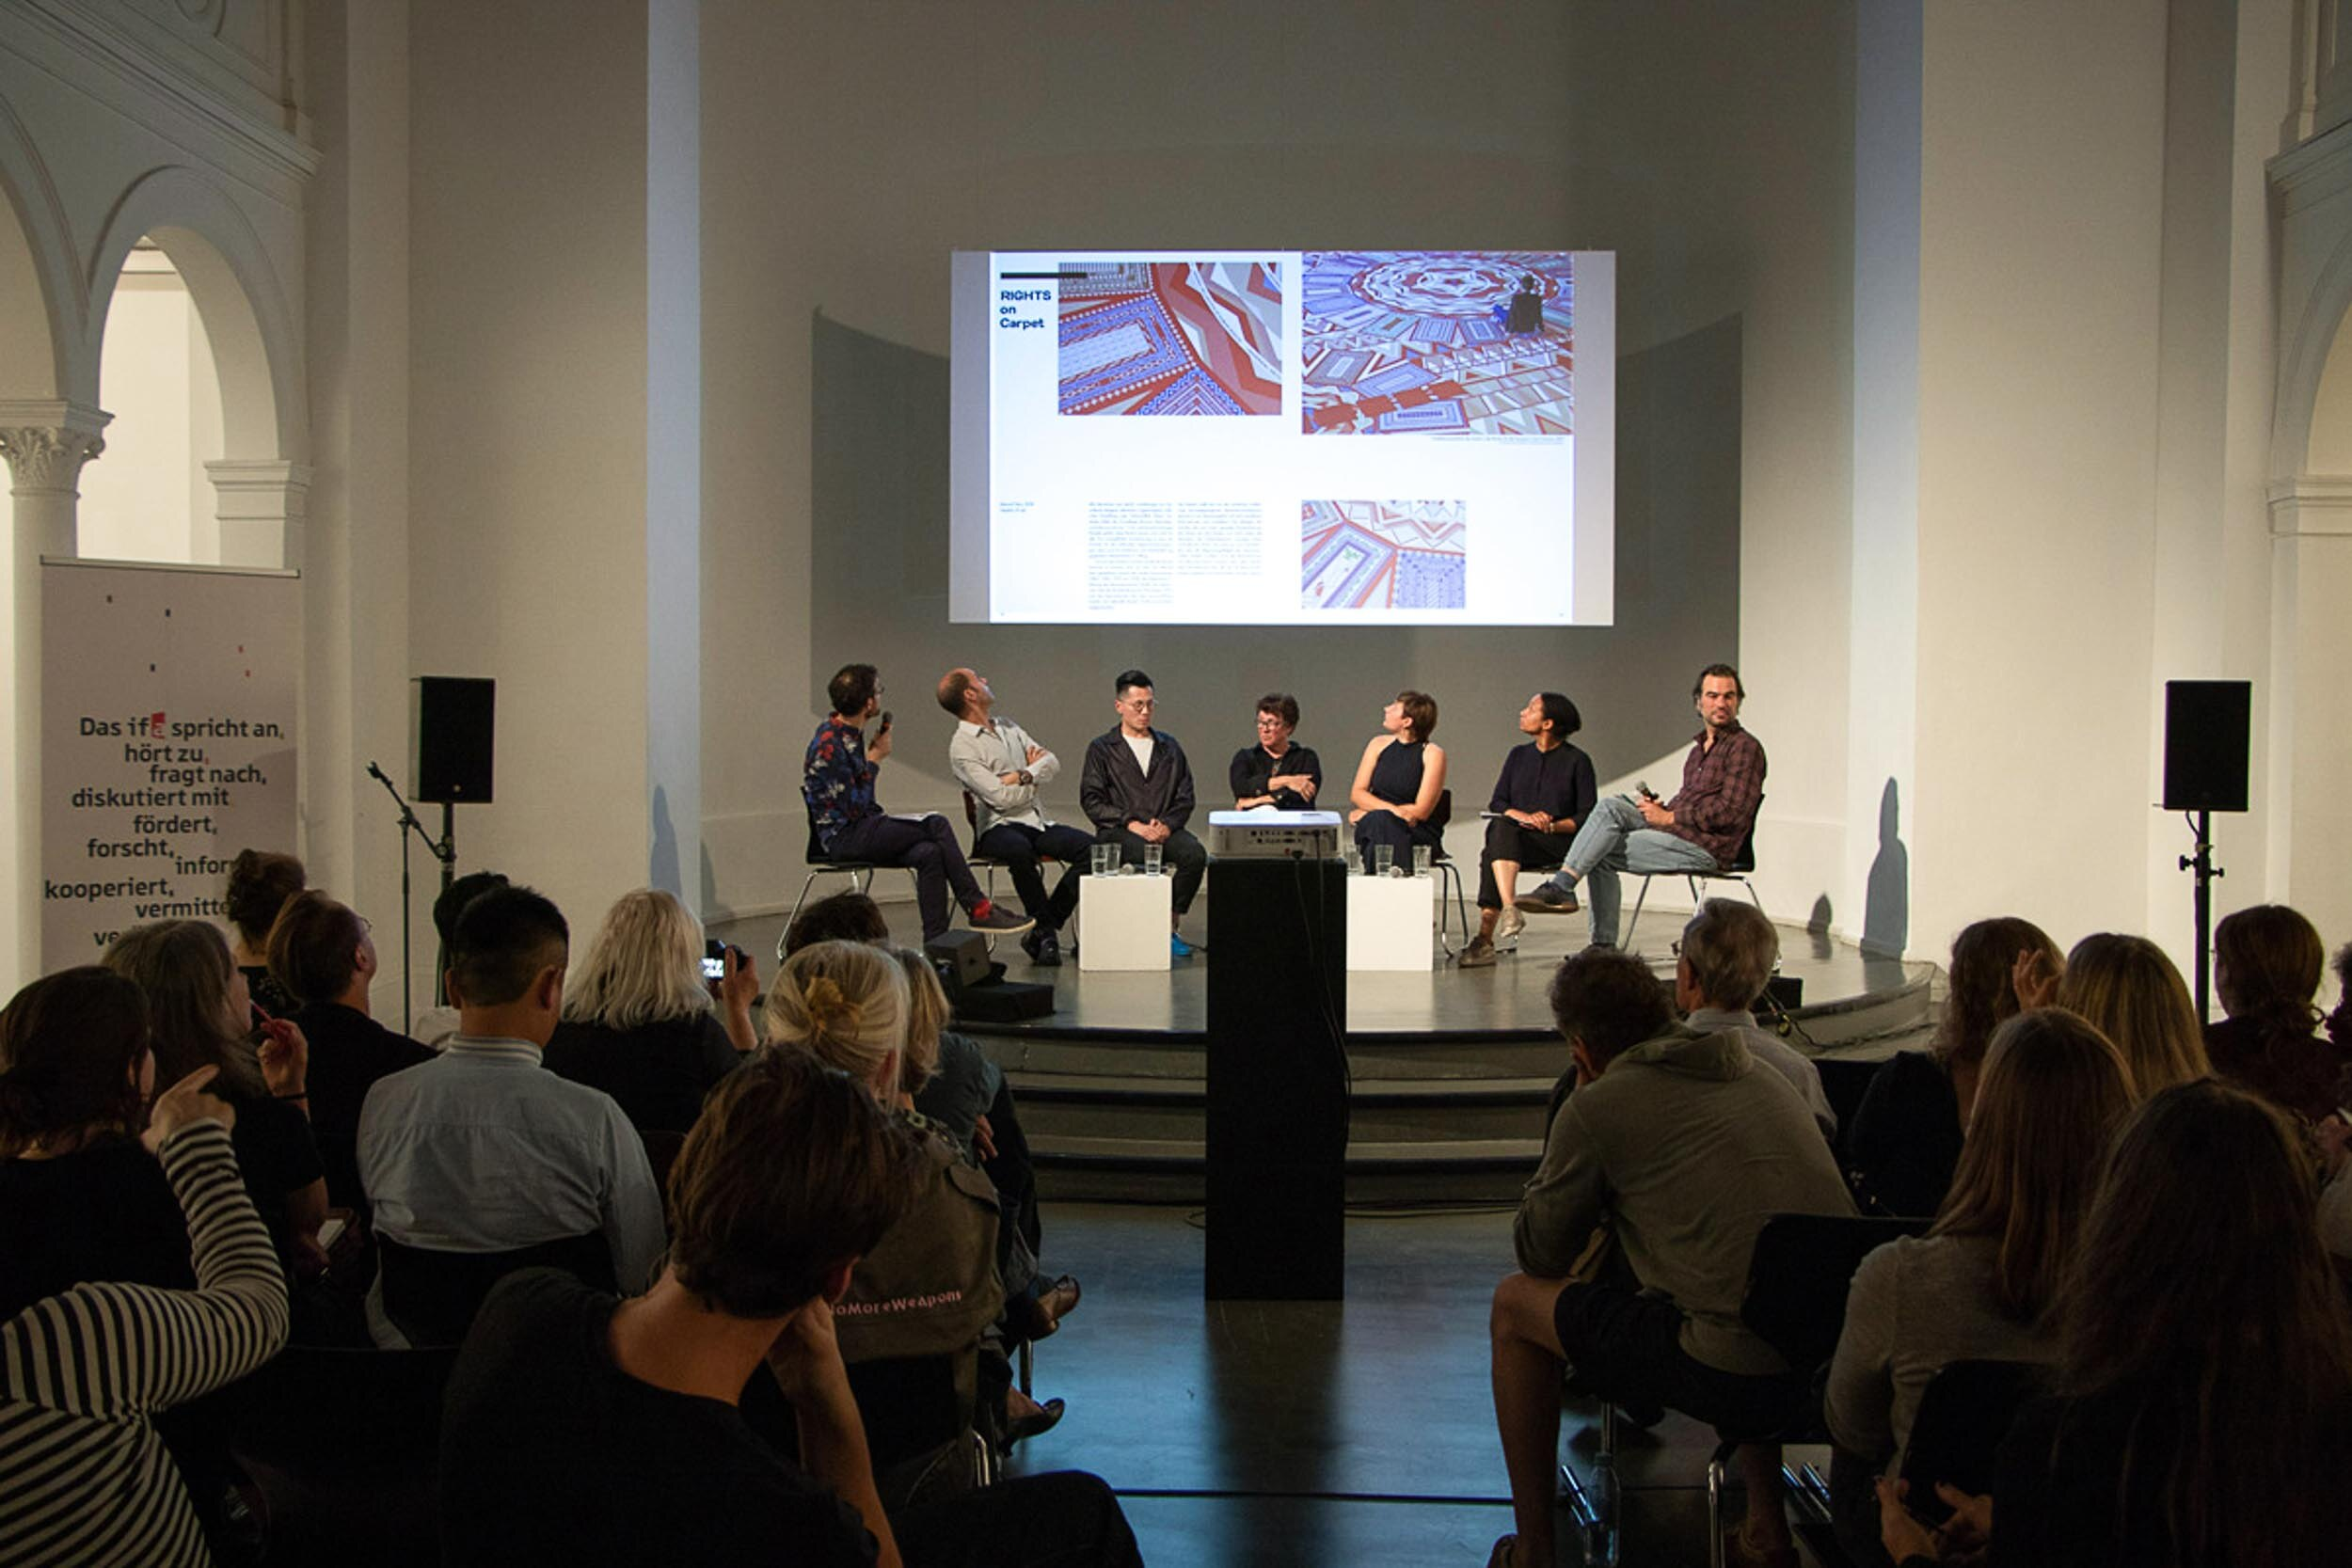 Artist talks as part of the exhibition opening with Manuel Herz, Samson Young, Angelika Levi, Lisa Marie Zander and Renée Tribble (from second left to right) moderated by Stefan Gruber and Christian Hiller. Photo: Simone Gilges, © ifa